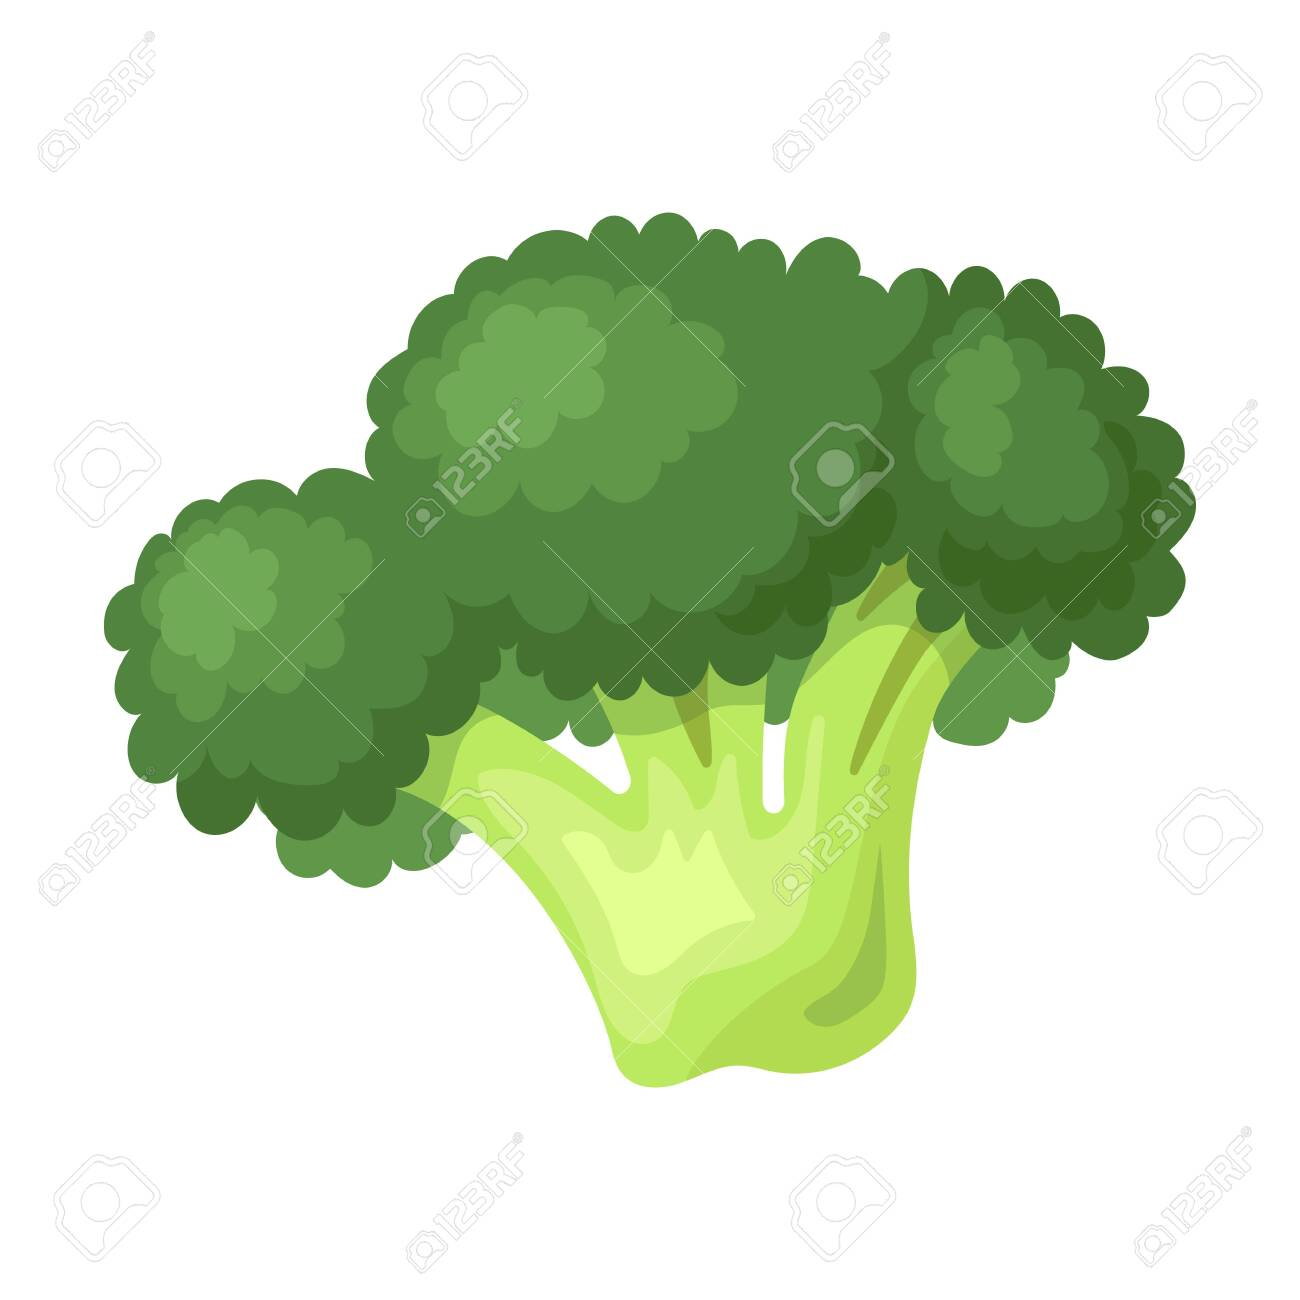 broccoli vector icon cartoon vector icon isolated on white background royalty free cliparts vectors and stock illustration image 147175490 broccoli vector icon cartoon vector icon isolated on white background